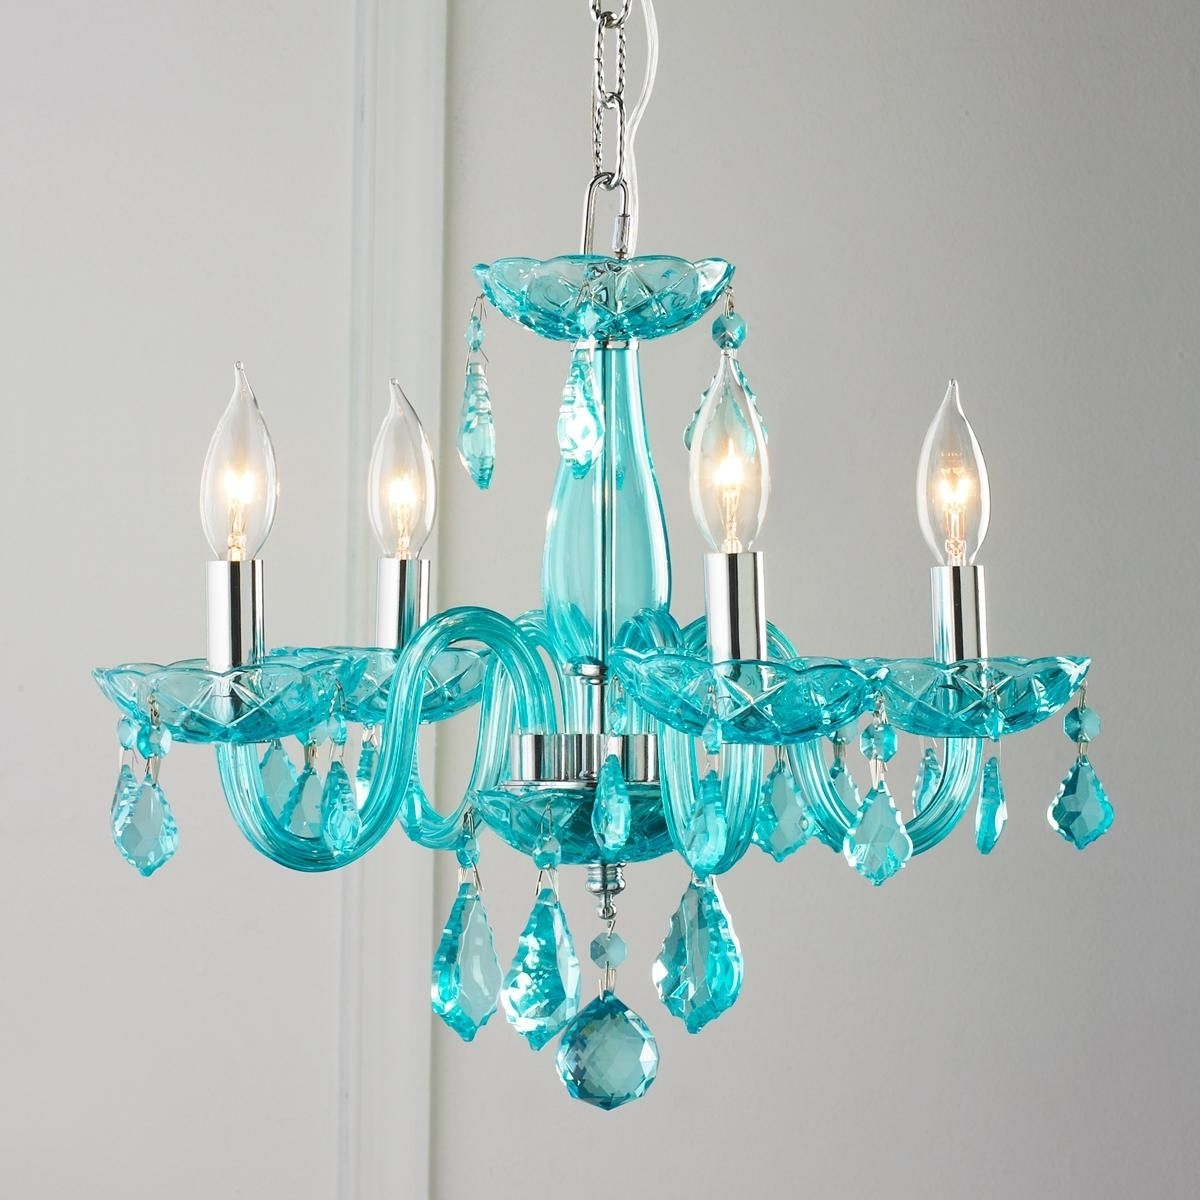 Mini Chandelier, Ceiling Canopy And In Most Recent Turquoise Chandelier Lights (View 11 of 20)